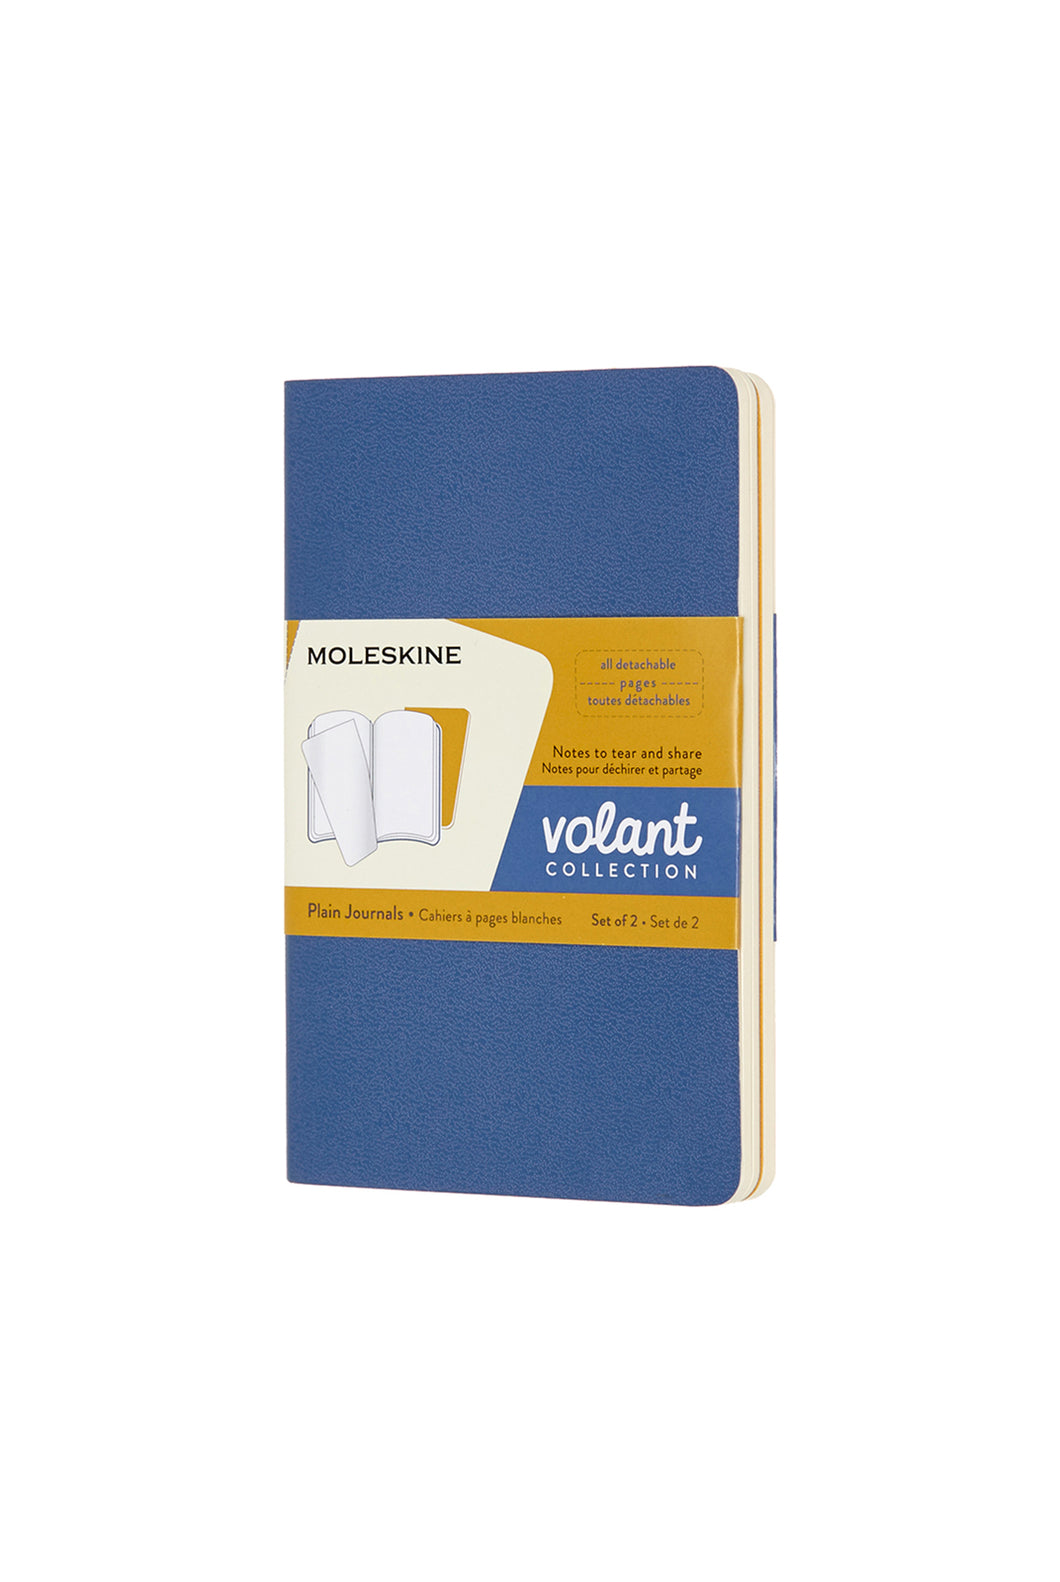 Moleskine - Volant Notebook - Plain - Pocket (9x14cm) - Forget Me Not Blue & Amber Yellow